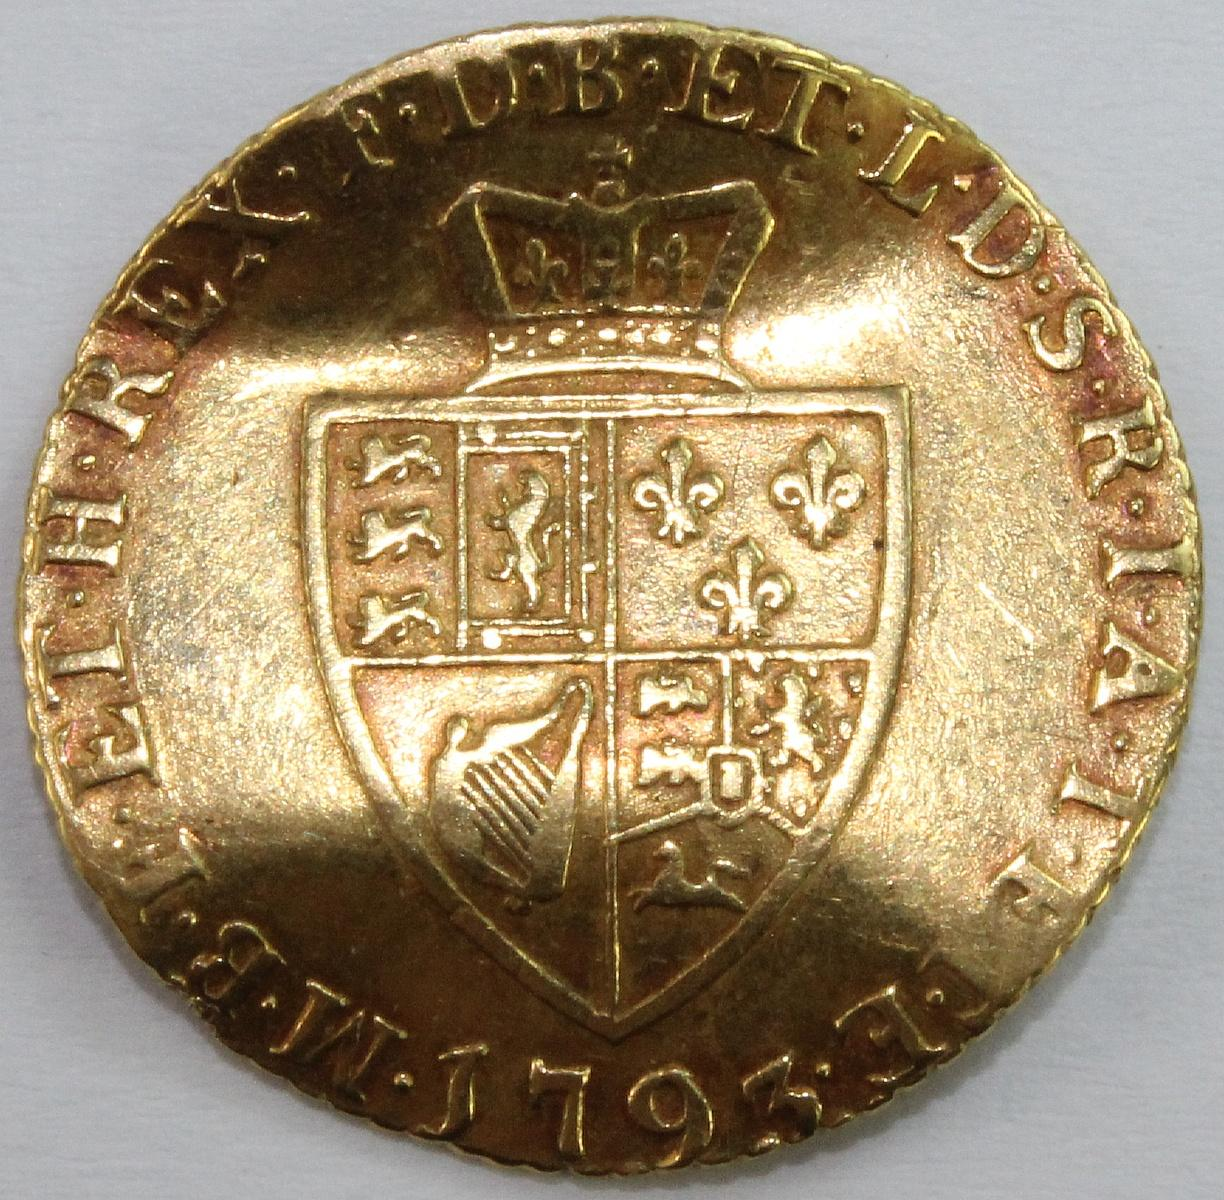 England (Great Britain). 1793 'George III' Gold (0.916) Half Guinea with 'Z' bend, about Very Fine